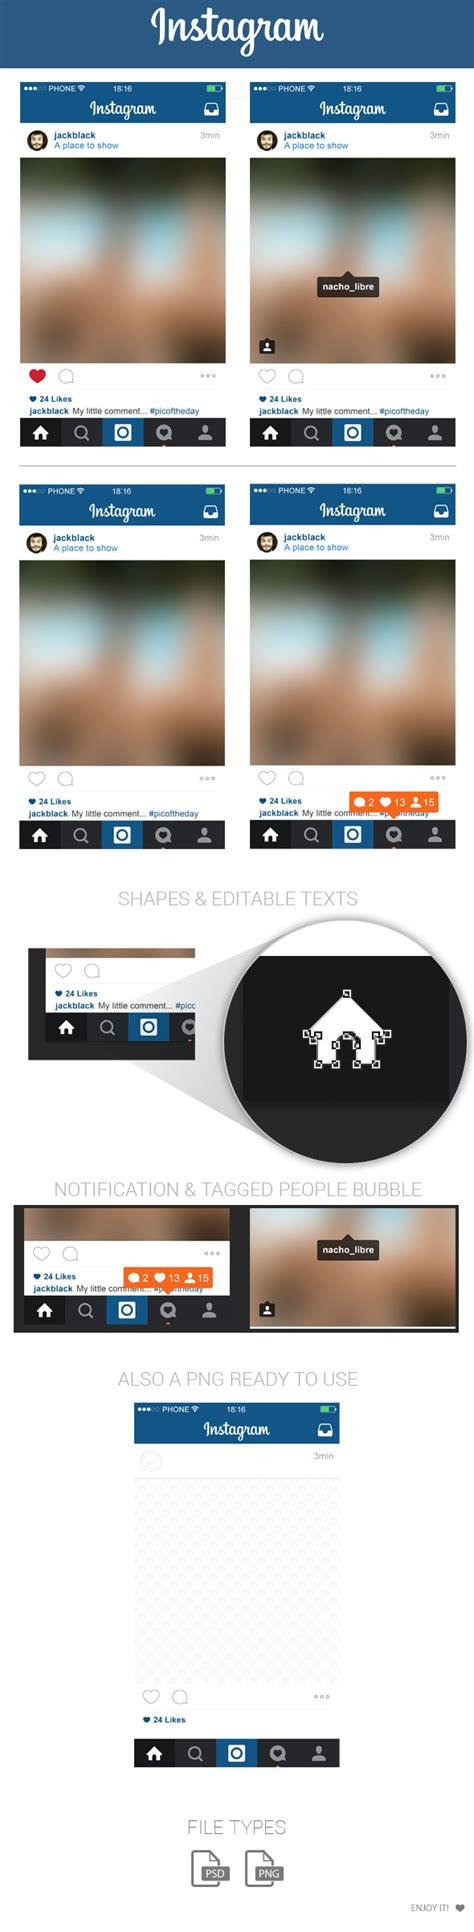 layout instagram gratis free instagram home layout ui psd may 2015 by marinad on